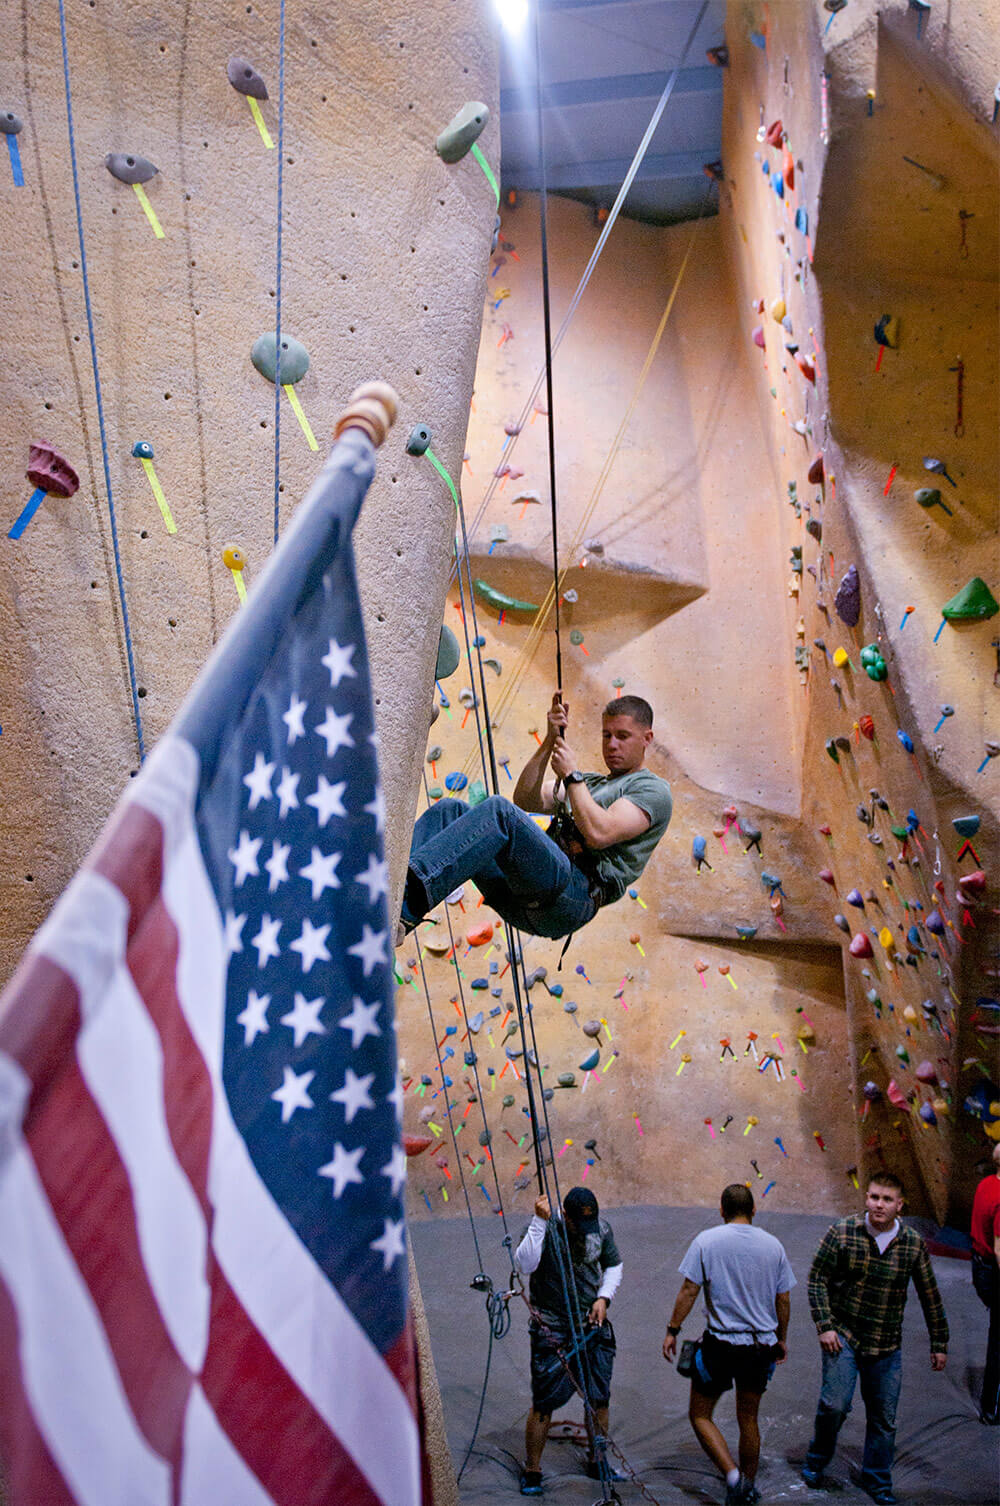 1LT Nick Westendorf, an operations officer with Headquarters and Headquarters Company, 8th Engineer Battalion, belays down after climbing a wall in the Boulders Sport Climbing Center in Harker Heights, Texas, as part of a Warrior Adventure Quest event.